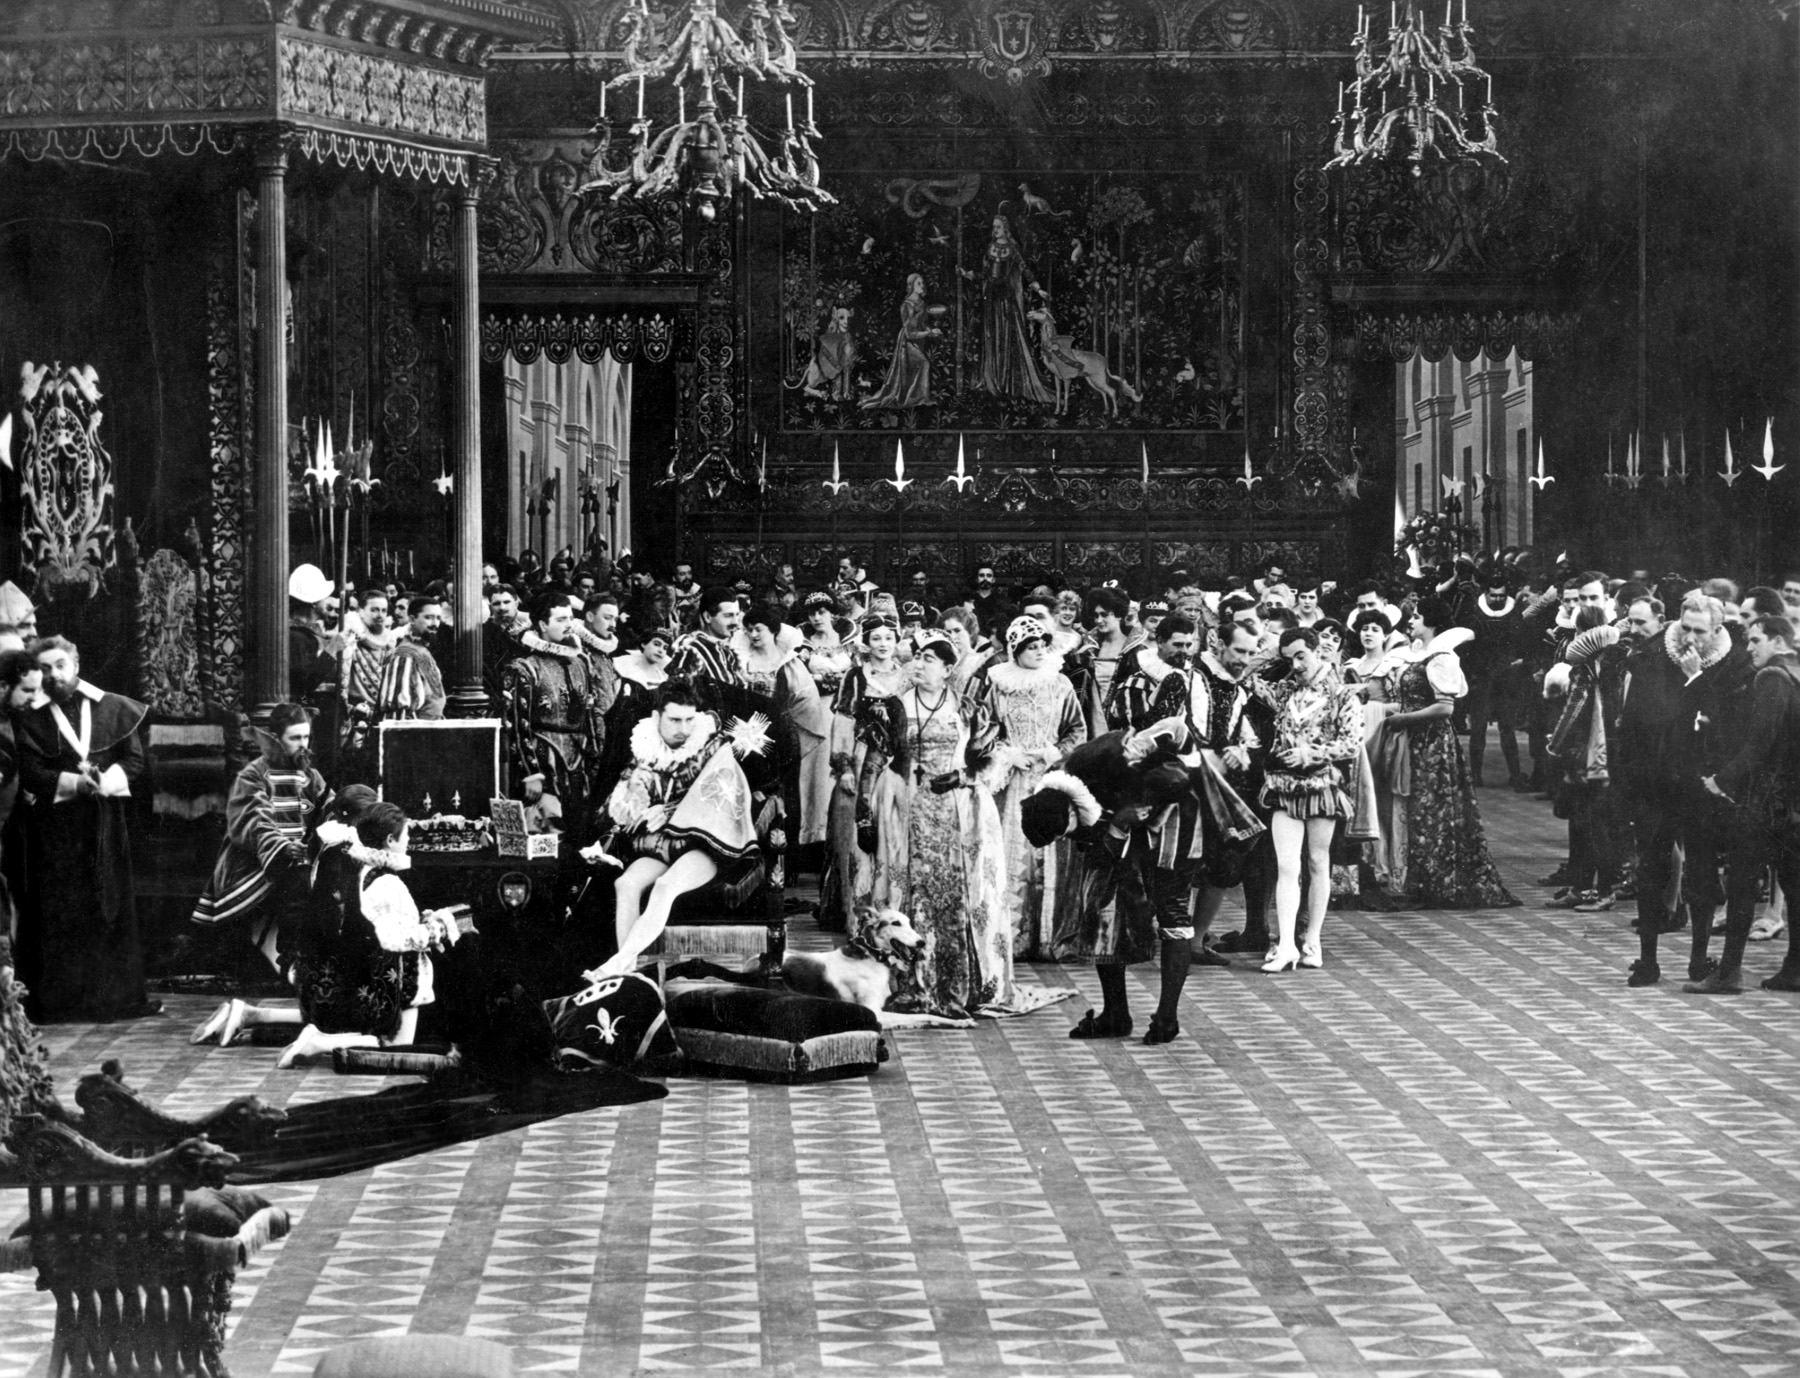 """Pictured here is a scene still from the 1916 film """"Intolerance."""" Restored by Nick & jane for Dr. Macro's High Quality Movie Scans Website: http:www.doctormacro.com. Enjoy!"""